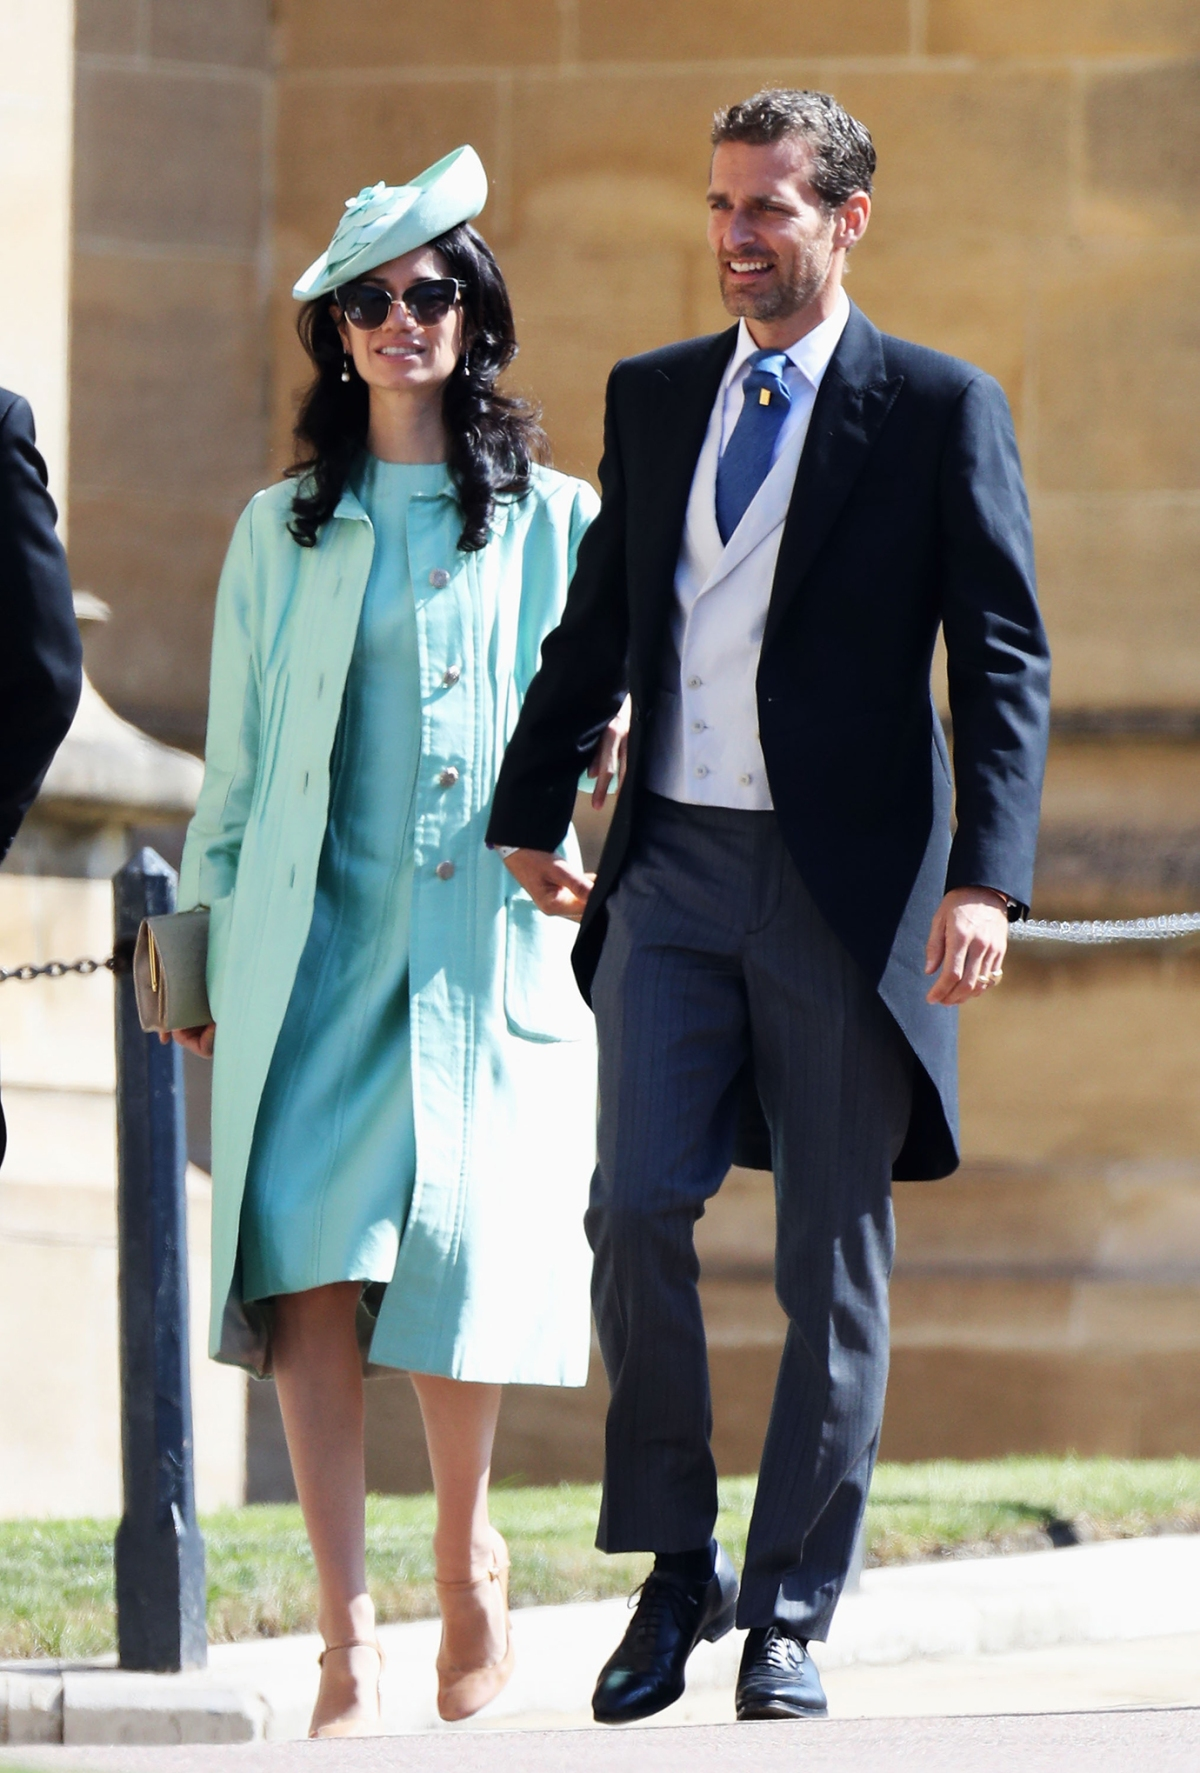 Style Lessons From the Best-dressed Guys at the Royal Wedding